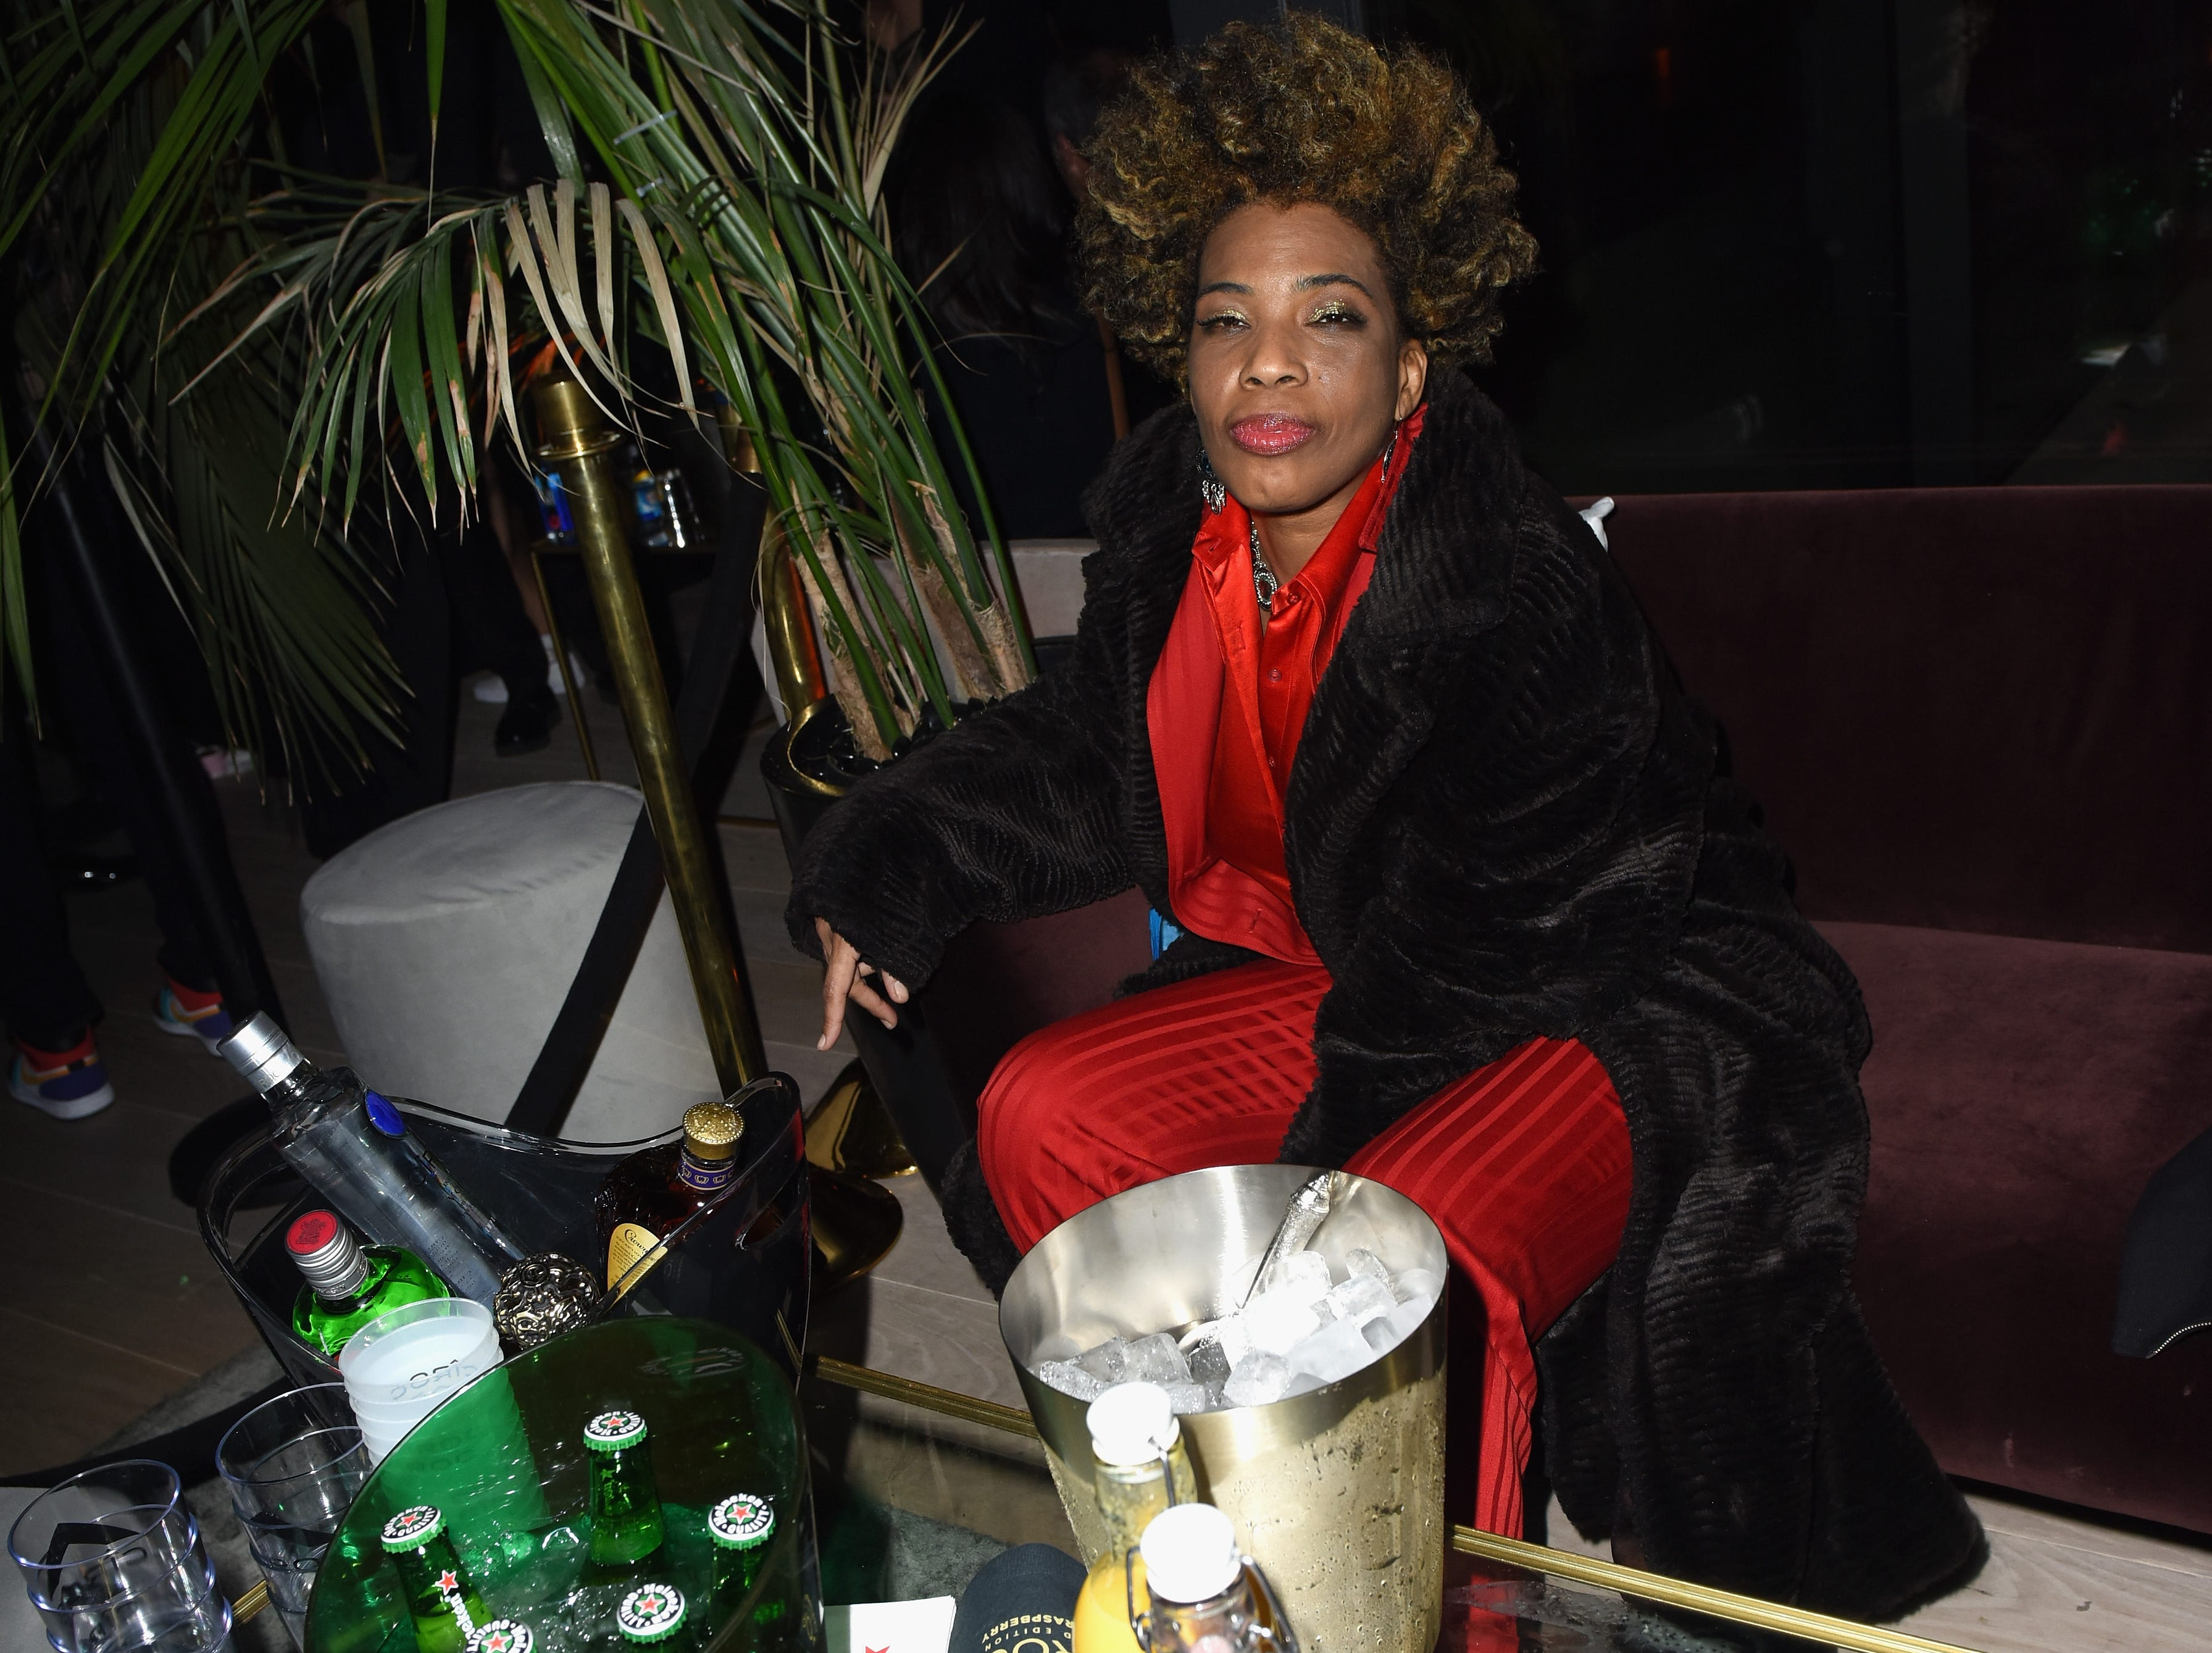 BEVERLY HILLS, CA - FEBRUARY 10: Macy Gray at Republic Records Grammy after party at Spring Place Beverly Hills on February 10, 2019 in Beverly Hills, California.  (Photo by Vivien Killilea/Getty Images for Republic Records) ORG XMIT: 775294839 ORIG FILE ID: 1097857092